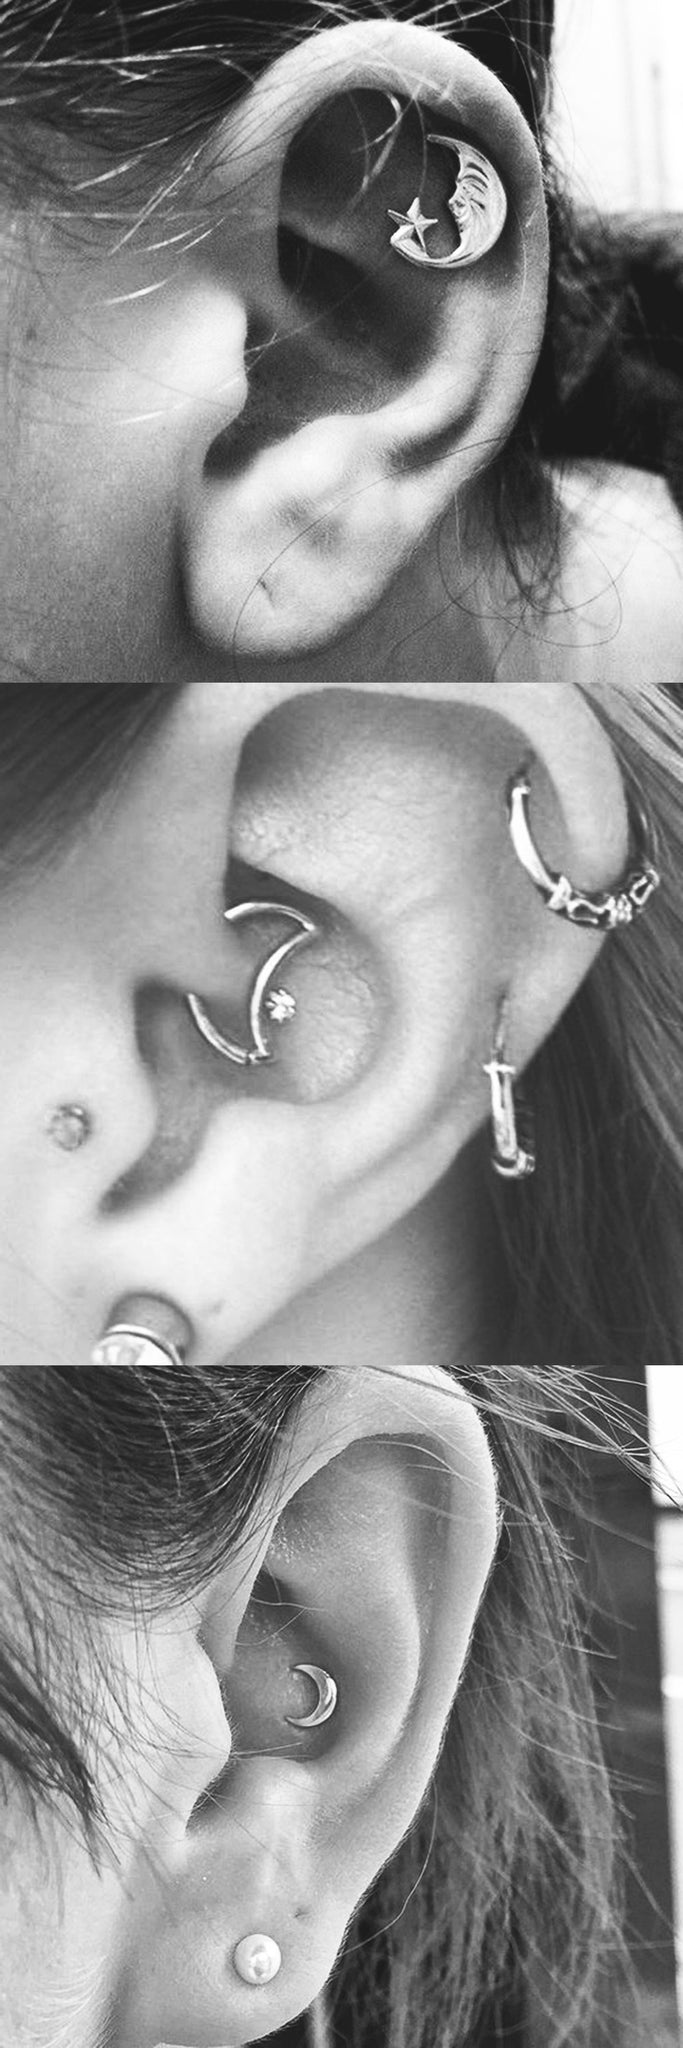 Cool Multiple Ear Piercing Ideas - Moon Cartilage Stud - Crecent Daith Rook Earring - Small Gold Moon Conch Barbell at MyBodiArt.com